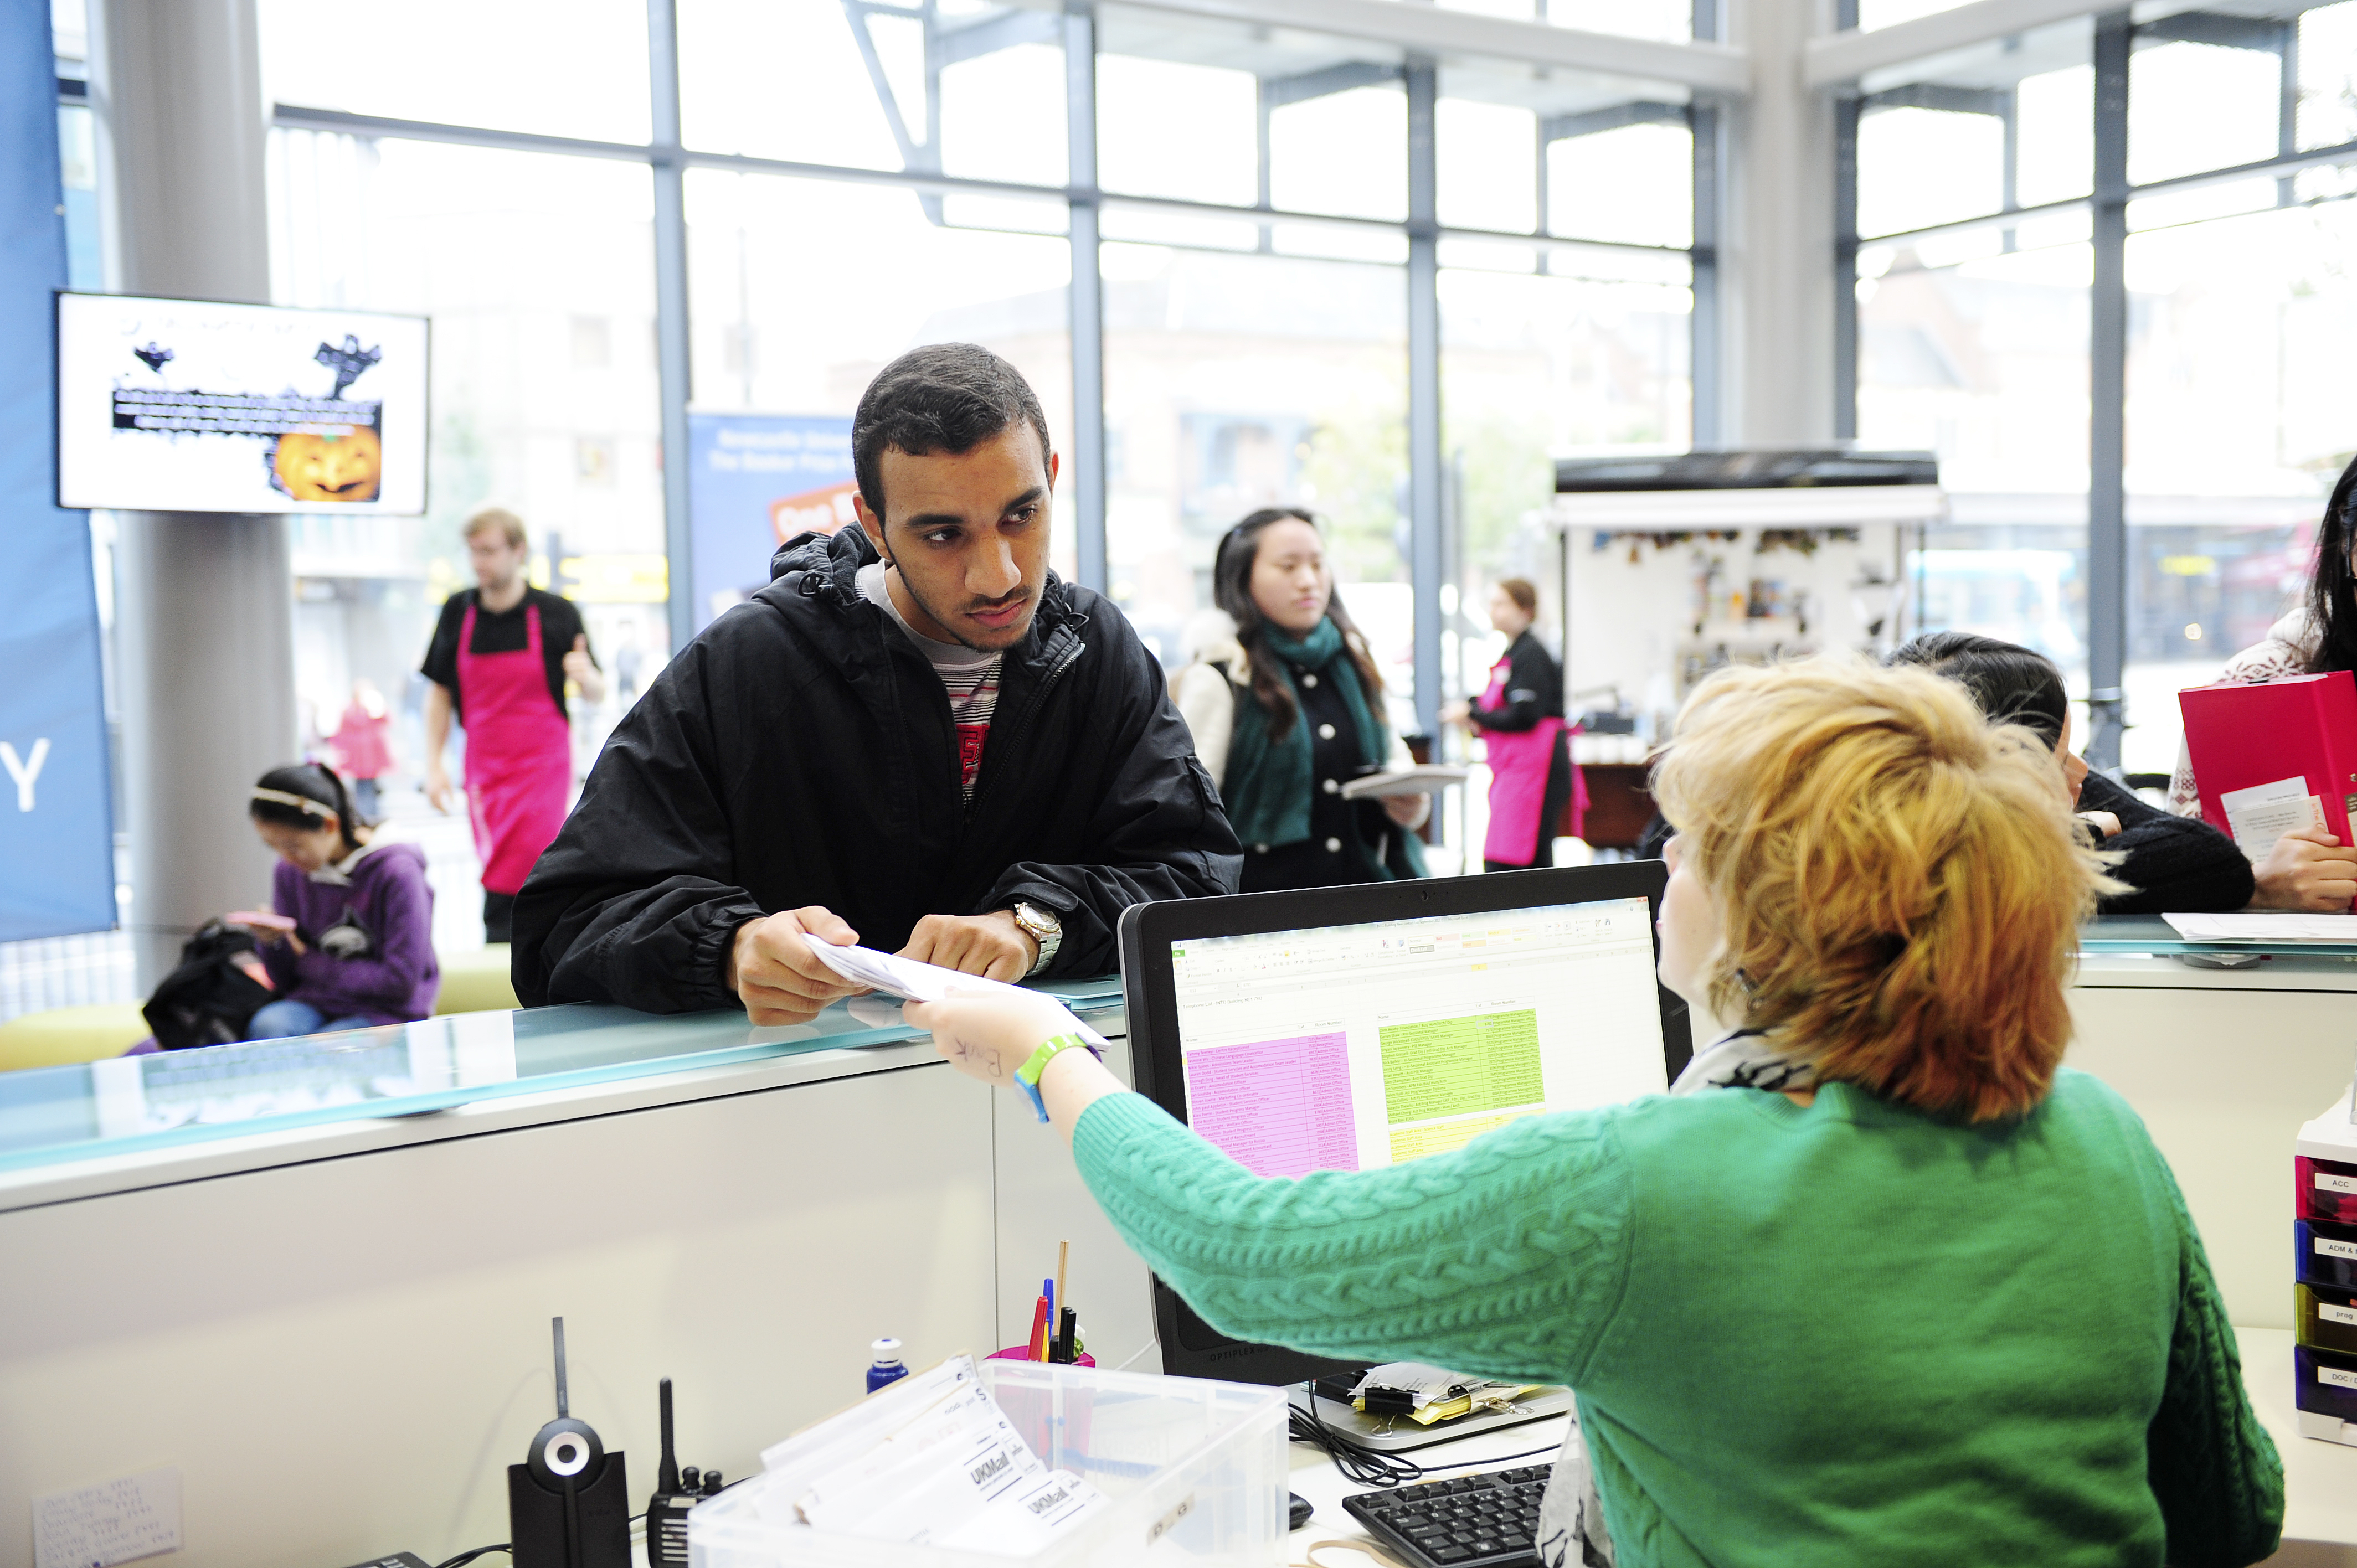 staff and students at welcome desk